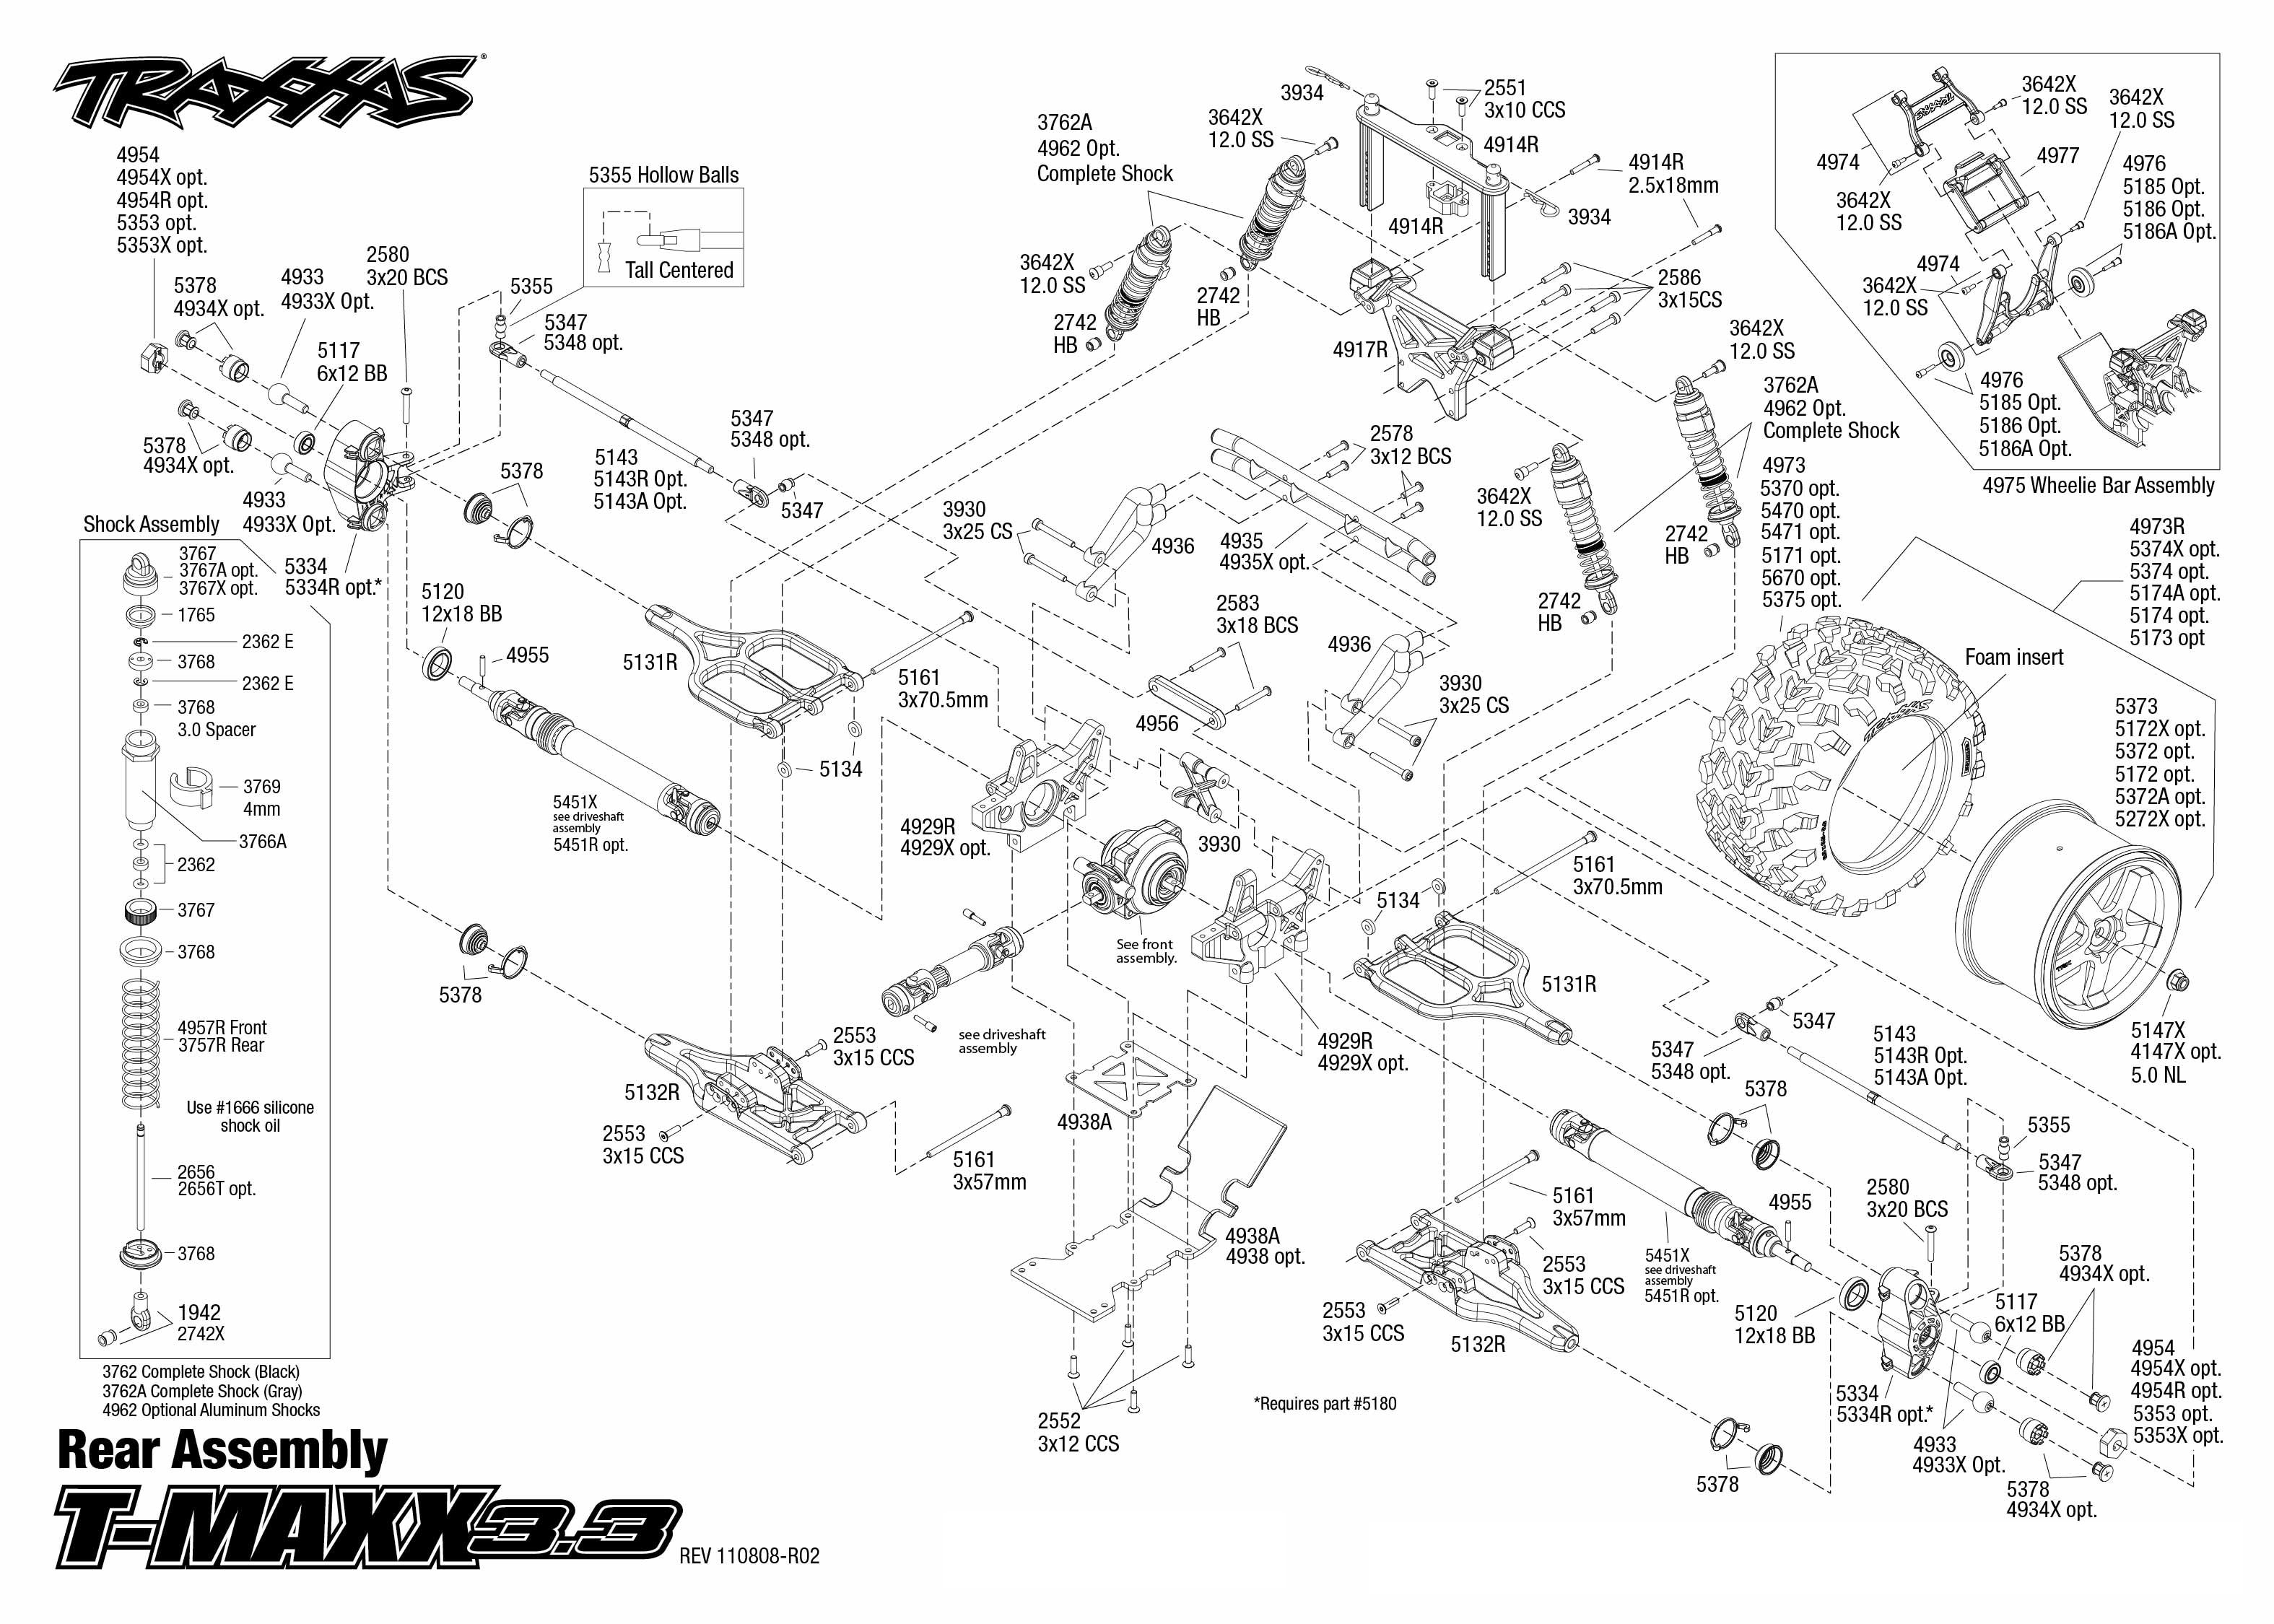 [SCHEMATICS_4US]  Traxxas 3 3 Engine Diagram - Wiring Diagram Schemes | Traxxas 2 5 Engine Diagram |  | Wiring Diagram Schemes - Mein-Raetien